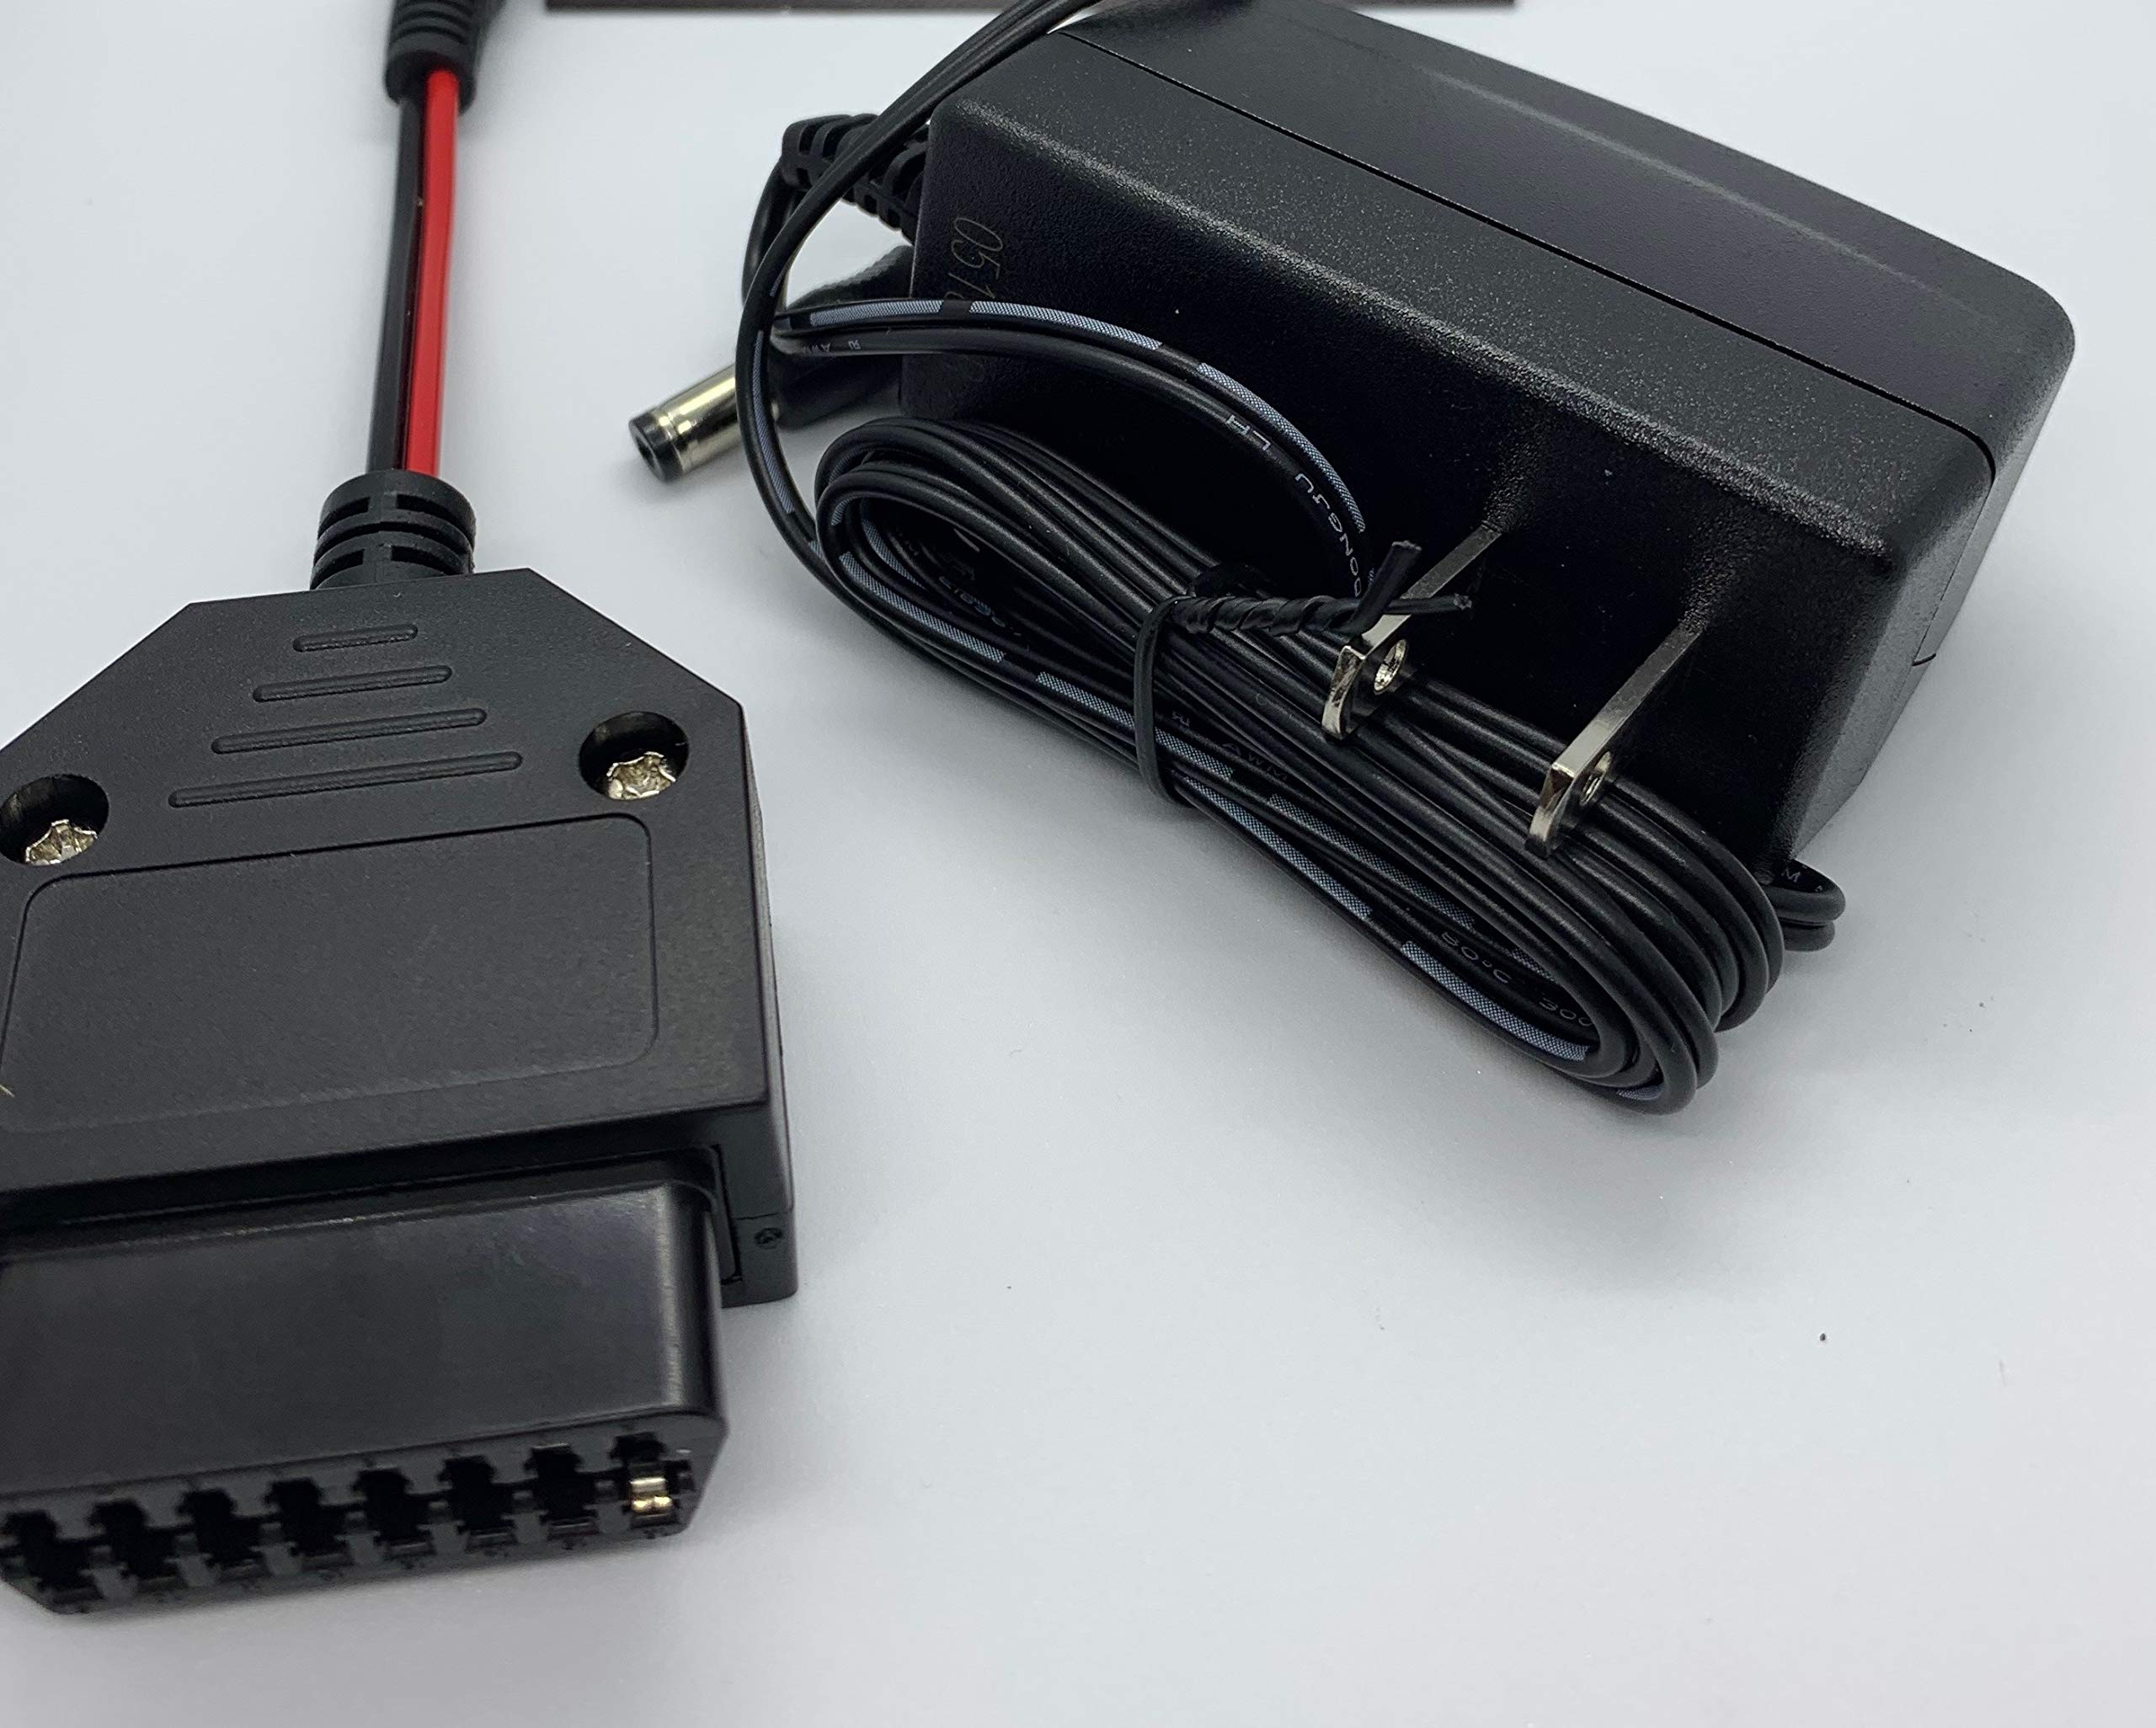 PeraltaProducts AC Adapter for AT&T ATT Harman Spark HSA-15UA-AA Vehicle Simulation Integrated